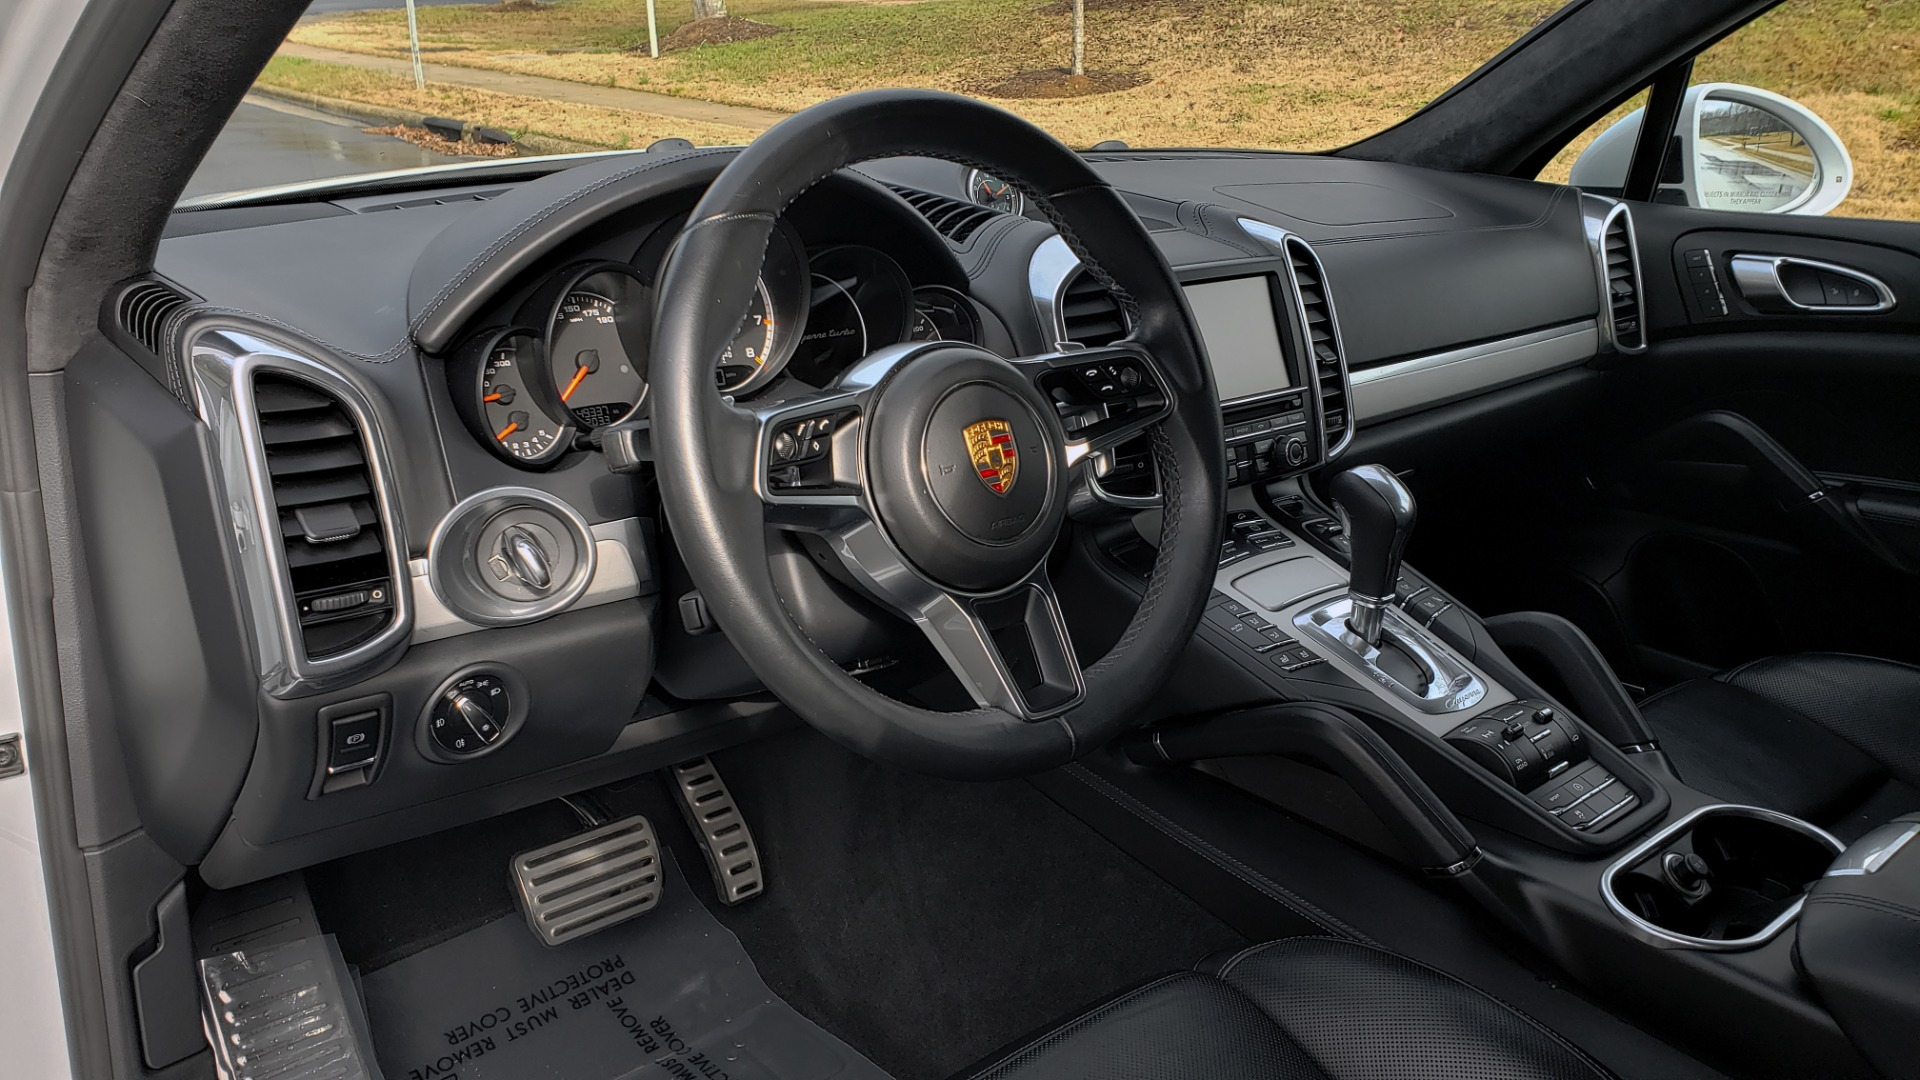 Used 2015 Porsche CAYENNE TURBO V8 / PREMIUM / NAV / SUNROOF / PARK ASSIST / LCA / REARVIEW for sale $47,995 at Formula Imports in Charlotte NC 28227 26